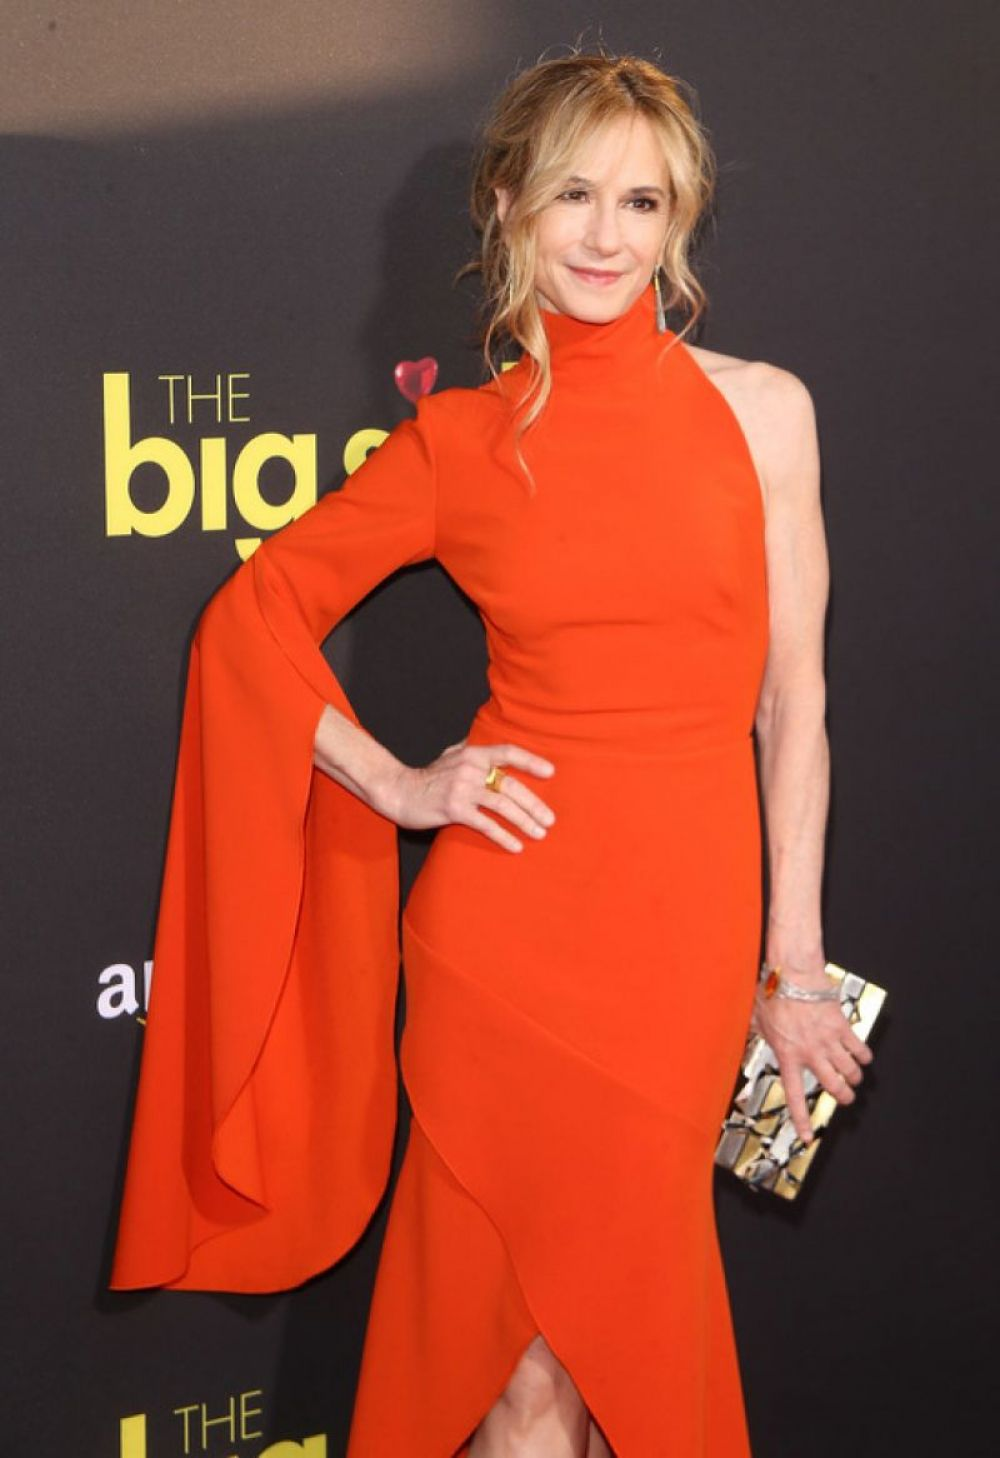 Holly Hunter At The Big Sick Premiere in Los Angeles